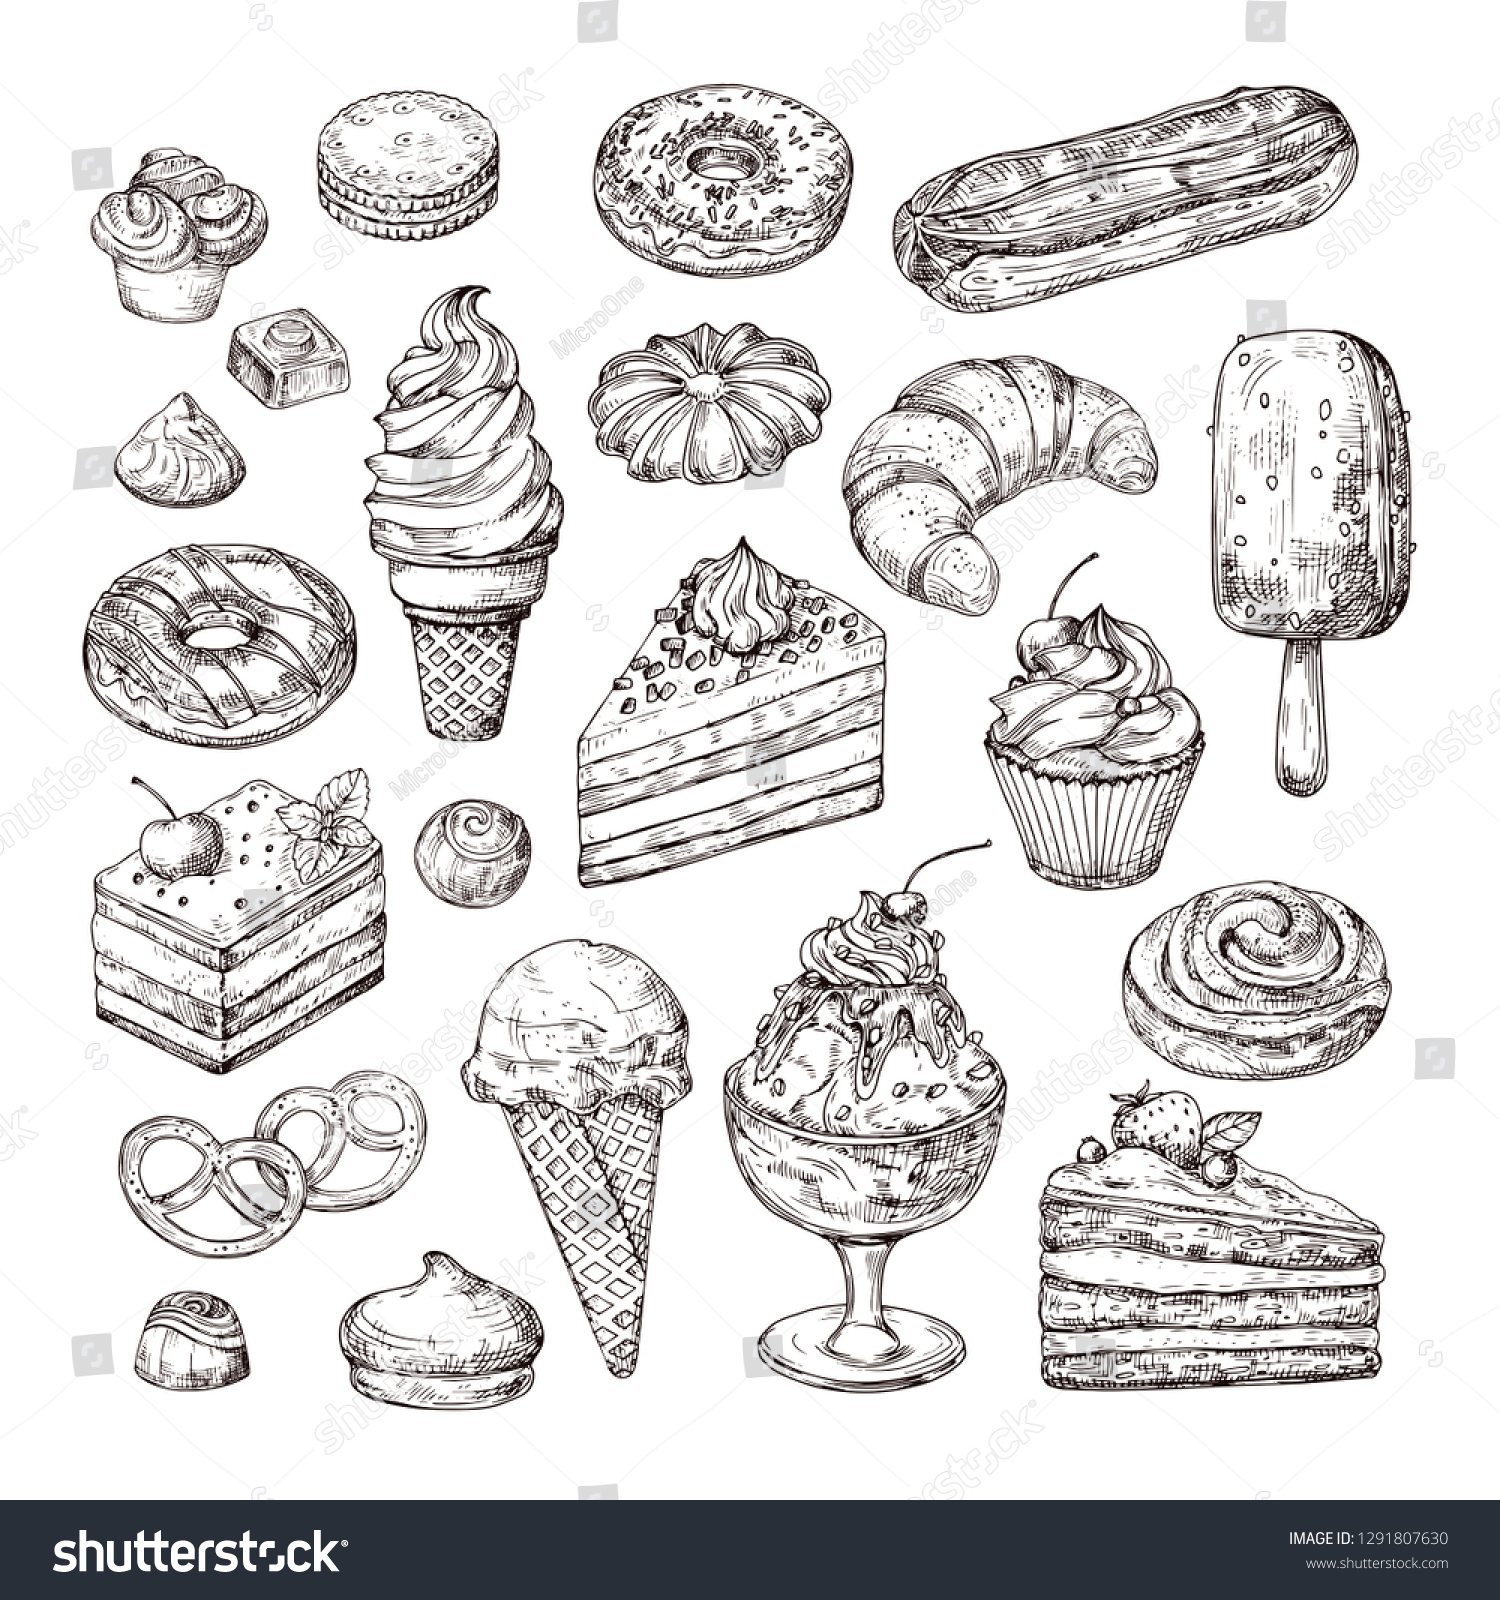 Sketch dessert. Cake, pastry and ice cream, apple strudel and muffin in vintage engraving style. Hand drawn fruit desserts vector set. Illustration of cake with cream, dessert sketch, pastry sweet